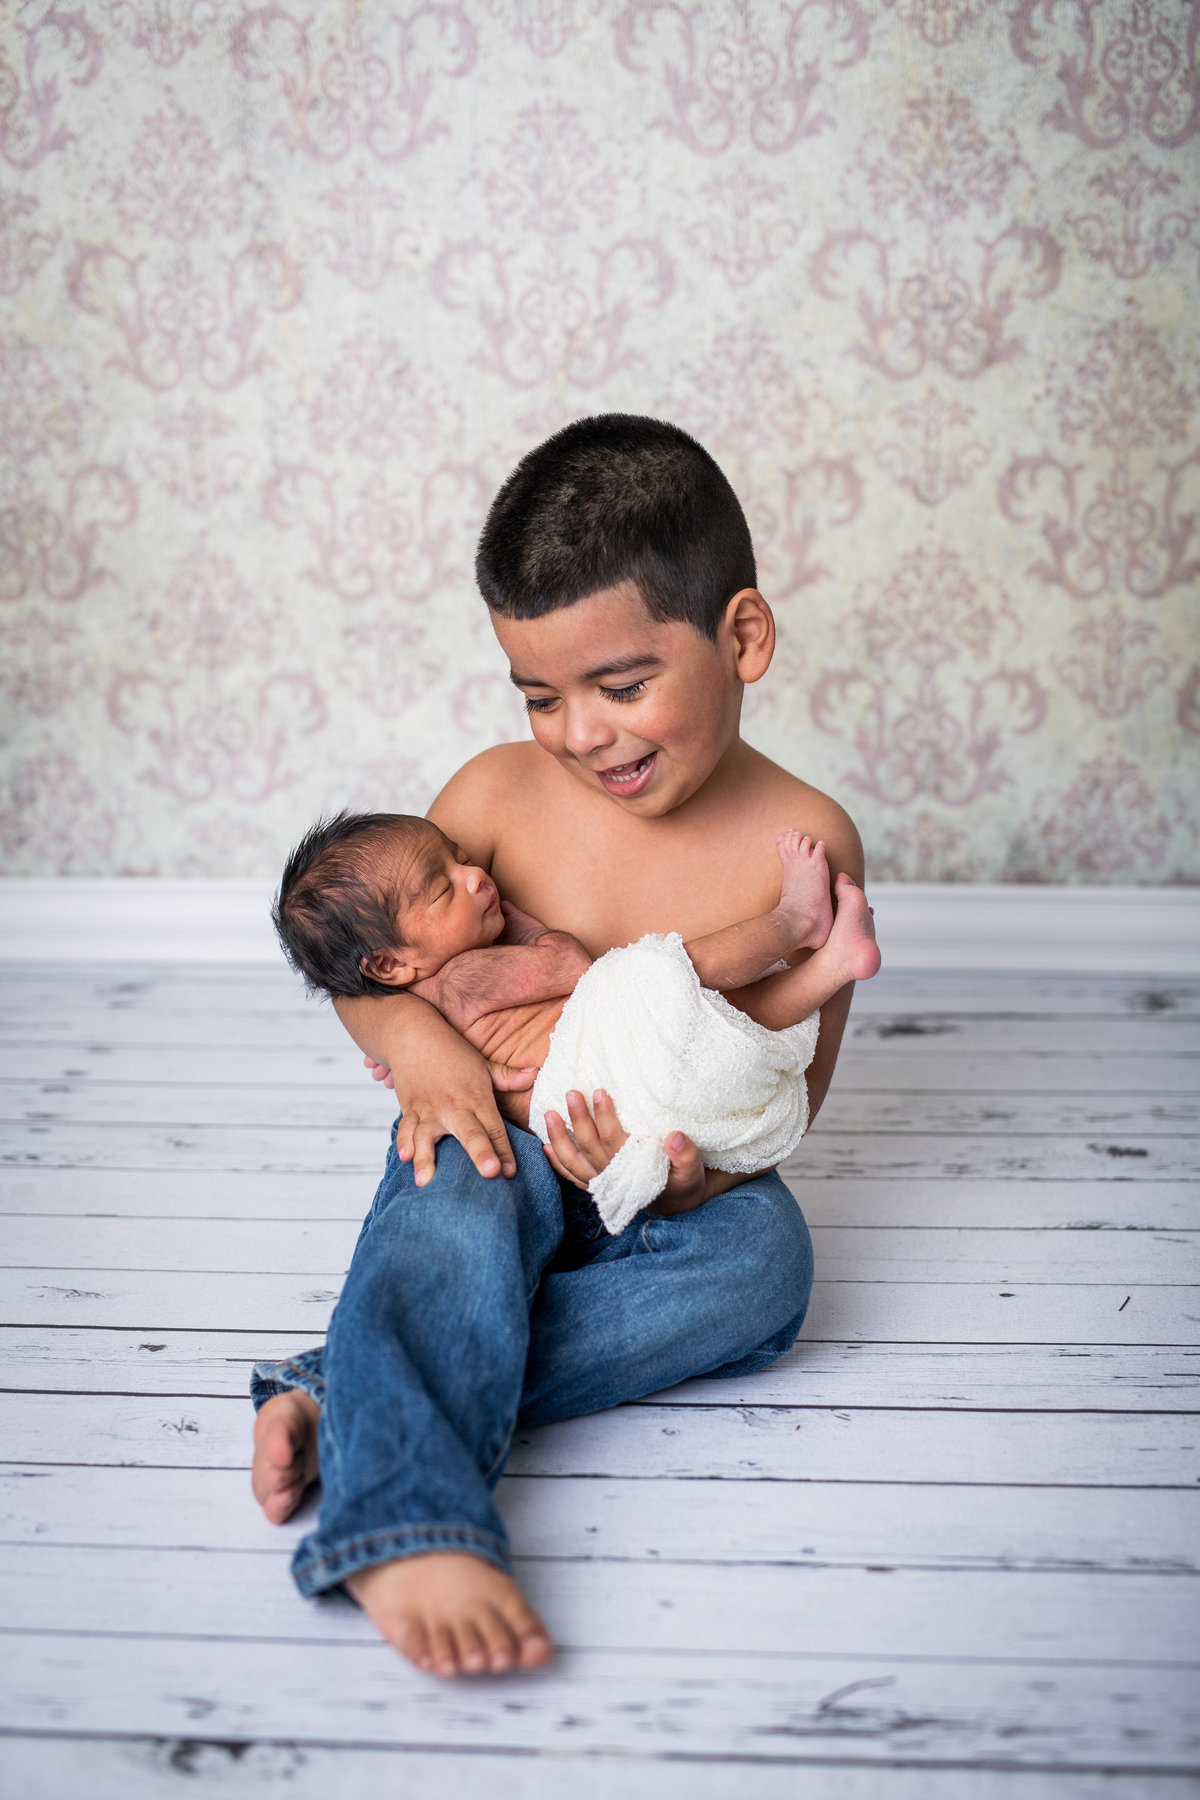 Brother holding newborn sister in his arms on s wooden floor in a photography studio